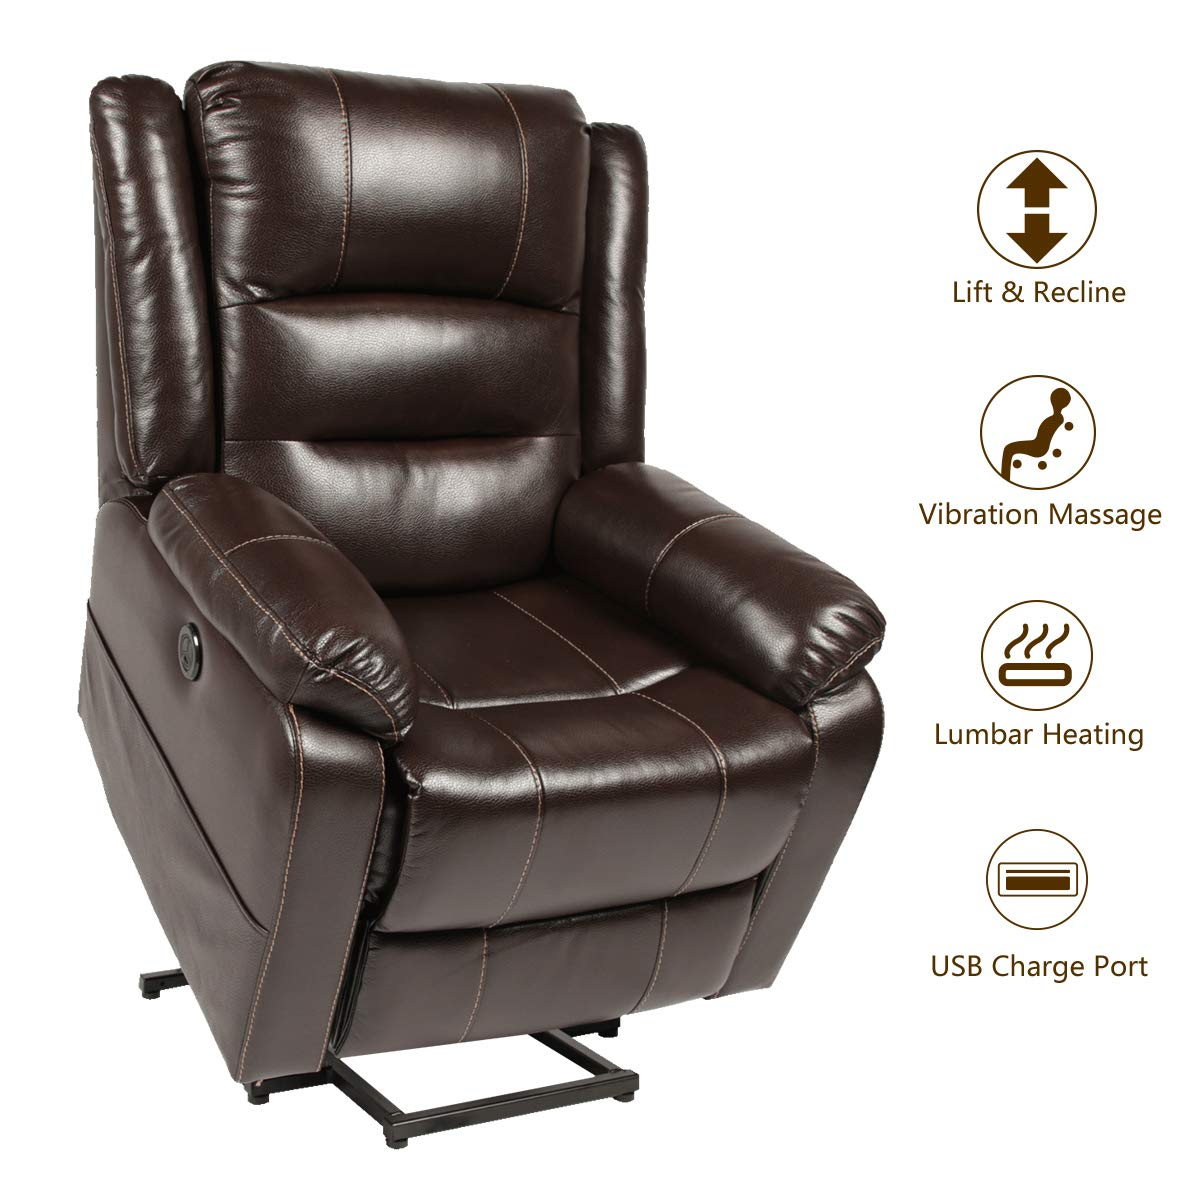 Esright Power Lift Chair Faux Leather Electric Recliner for Elderly, Heated Vibration Massage Sofa with Side Pockets, USB Charge Port & Remote Control, Dark Brown by Esright